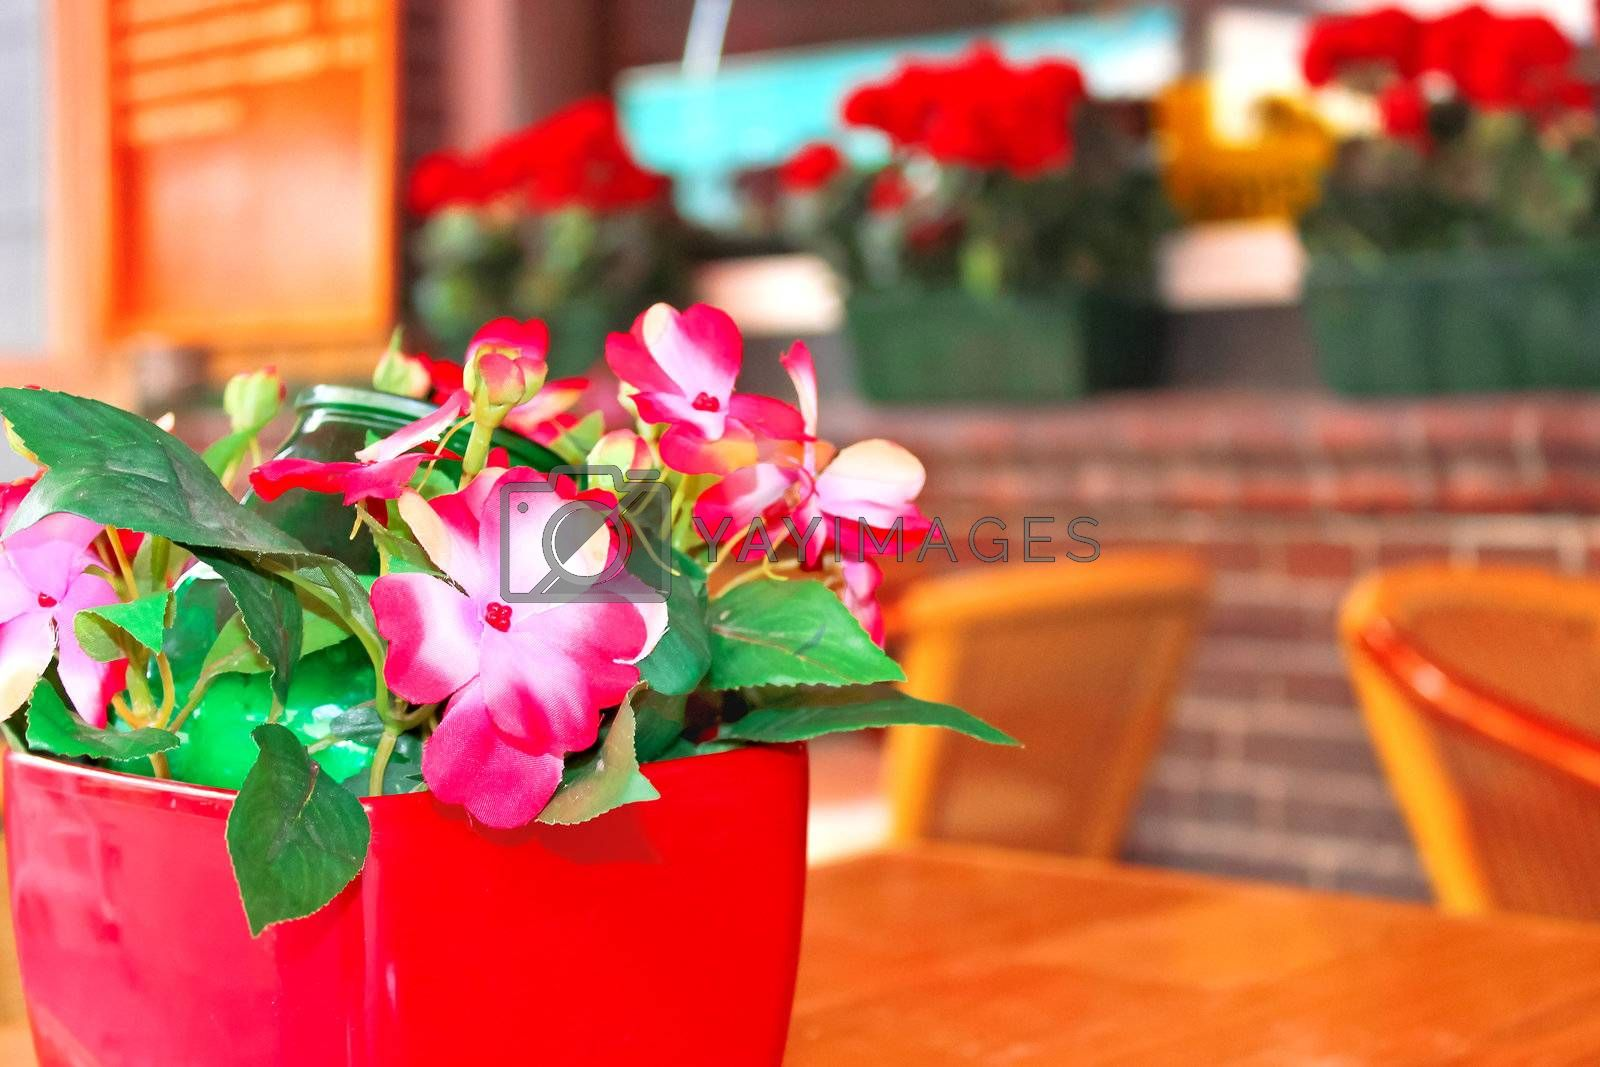 Flowers on the table in a cafe